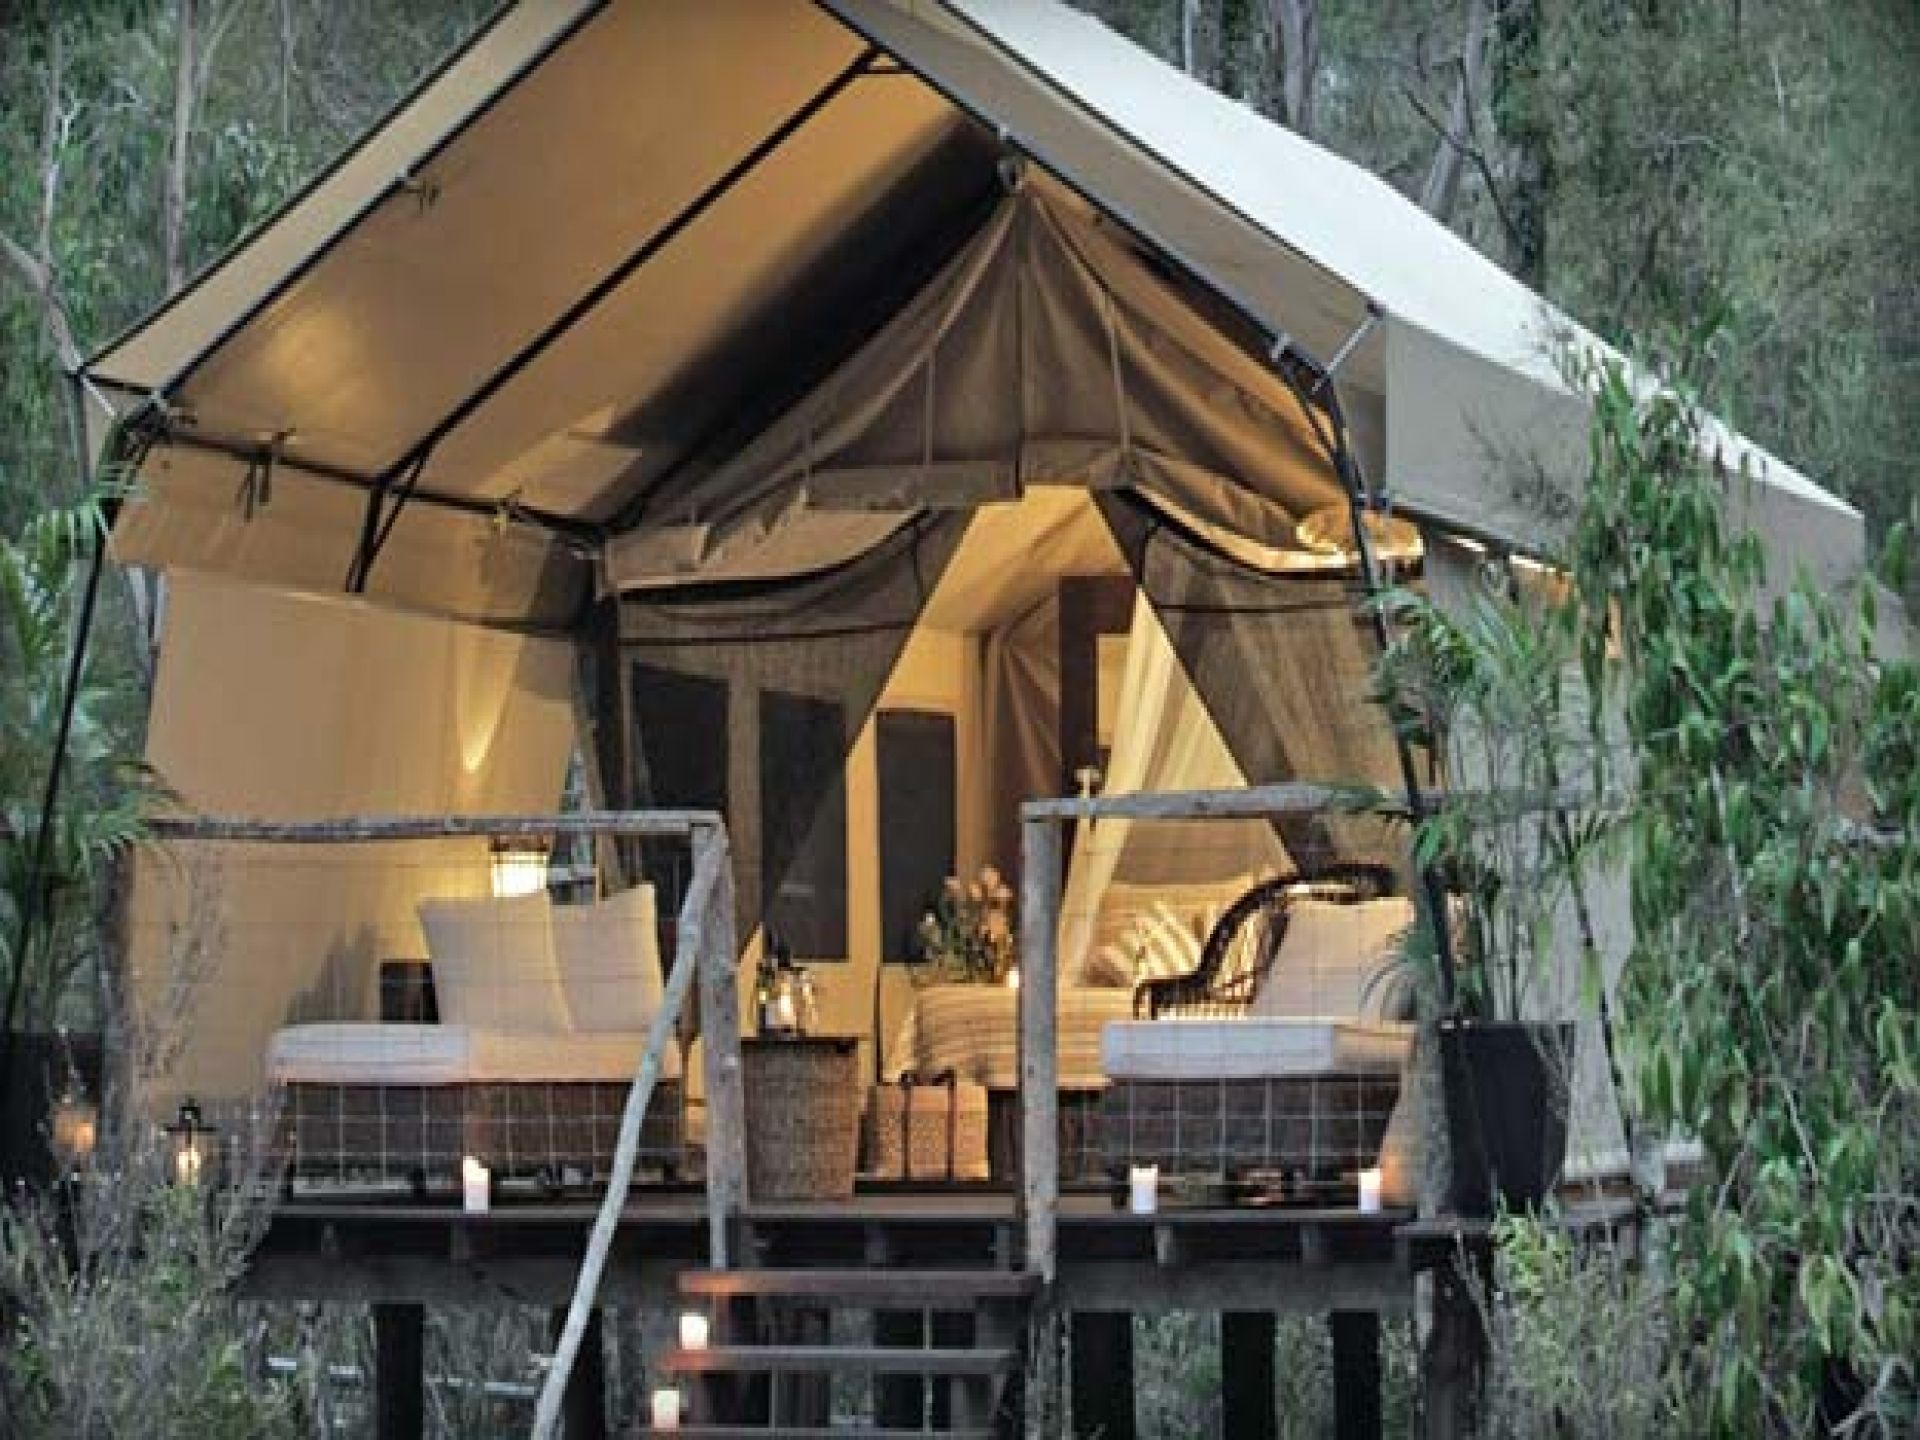 #treehouse #tents # outdoor living Cool Tree Houses Roof Tent Interior Design - GiesenDesign : house tent - memphite.com